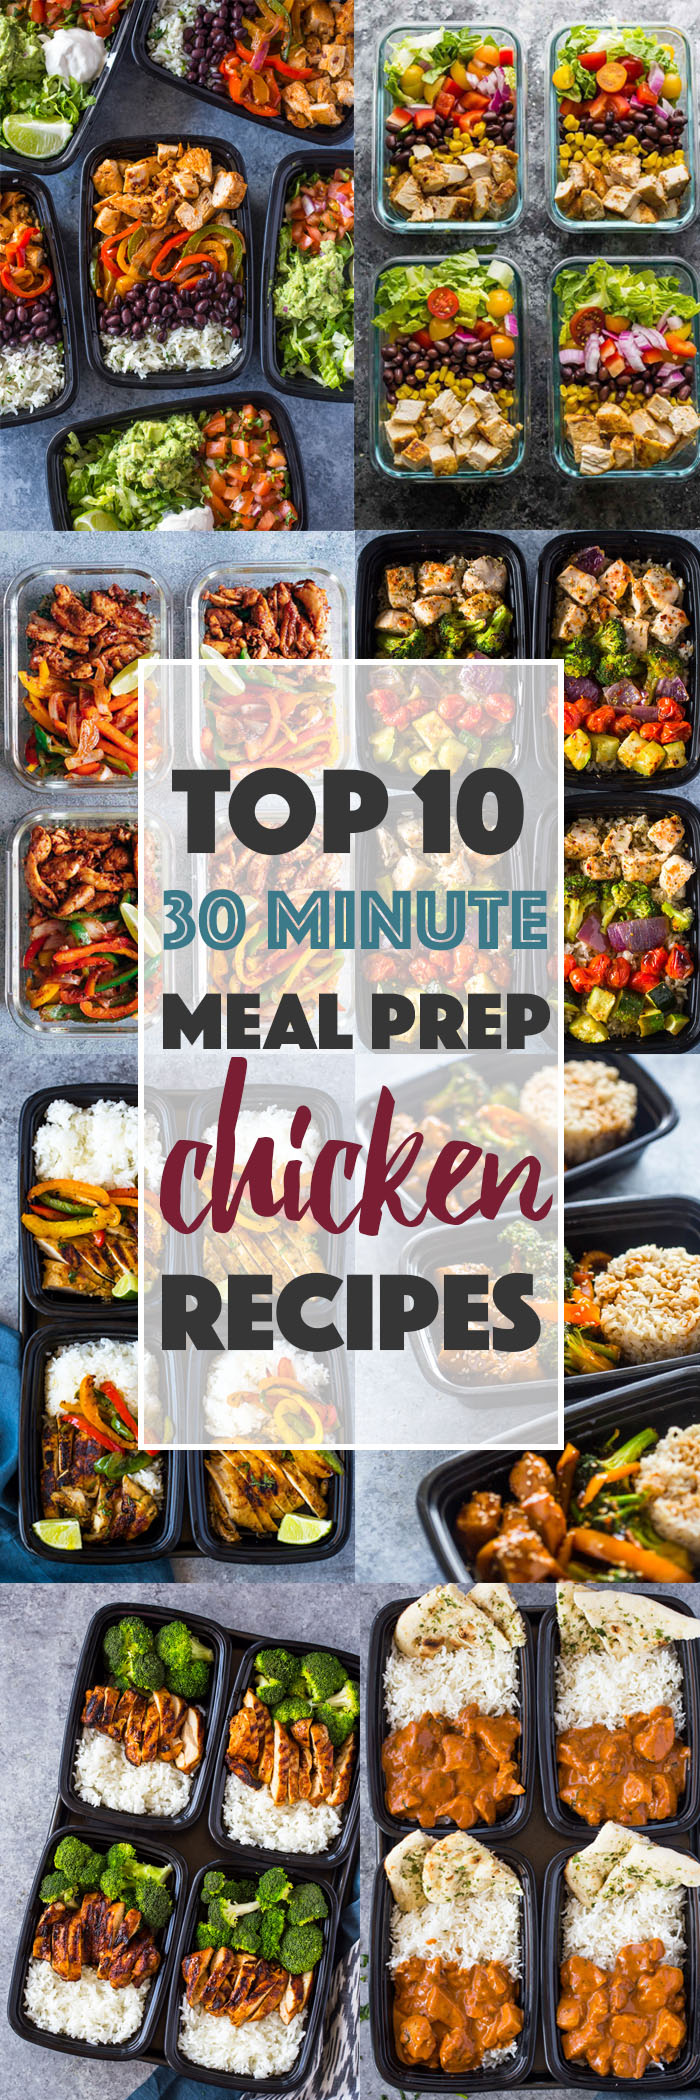 Top 10 (30 Minute) Meal-prep Chicken Recipes #healthy #mealprep #recipes #top #best #quick #mealprepping